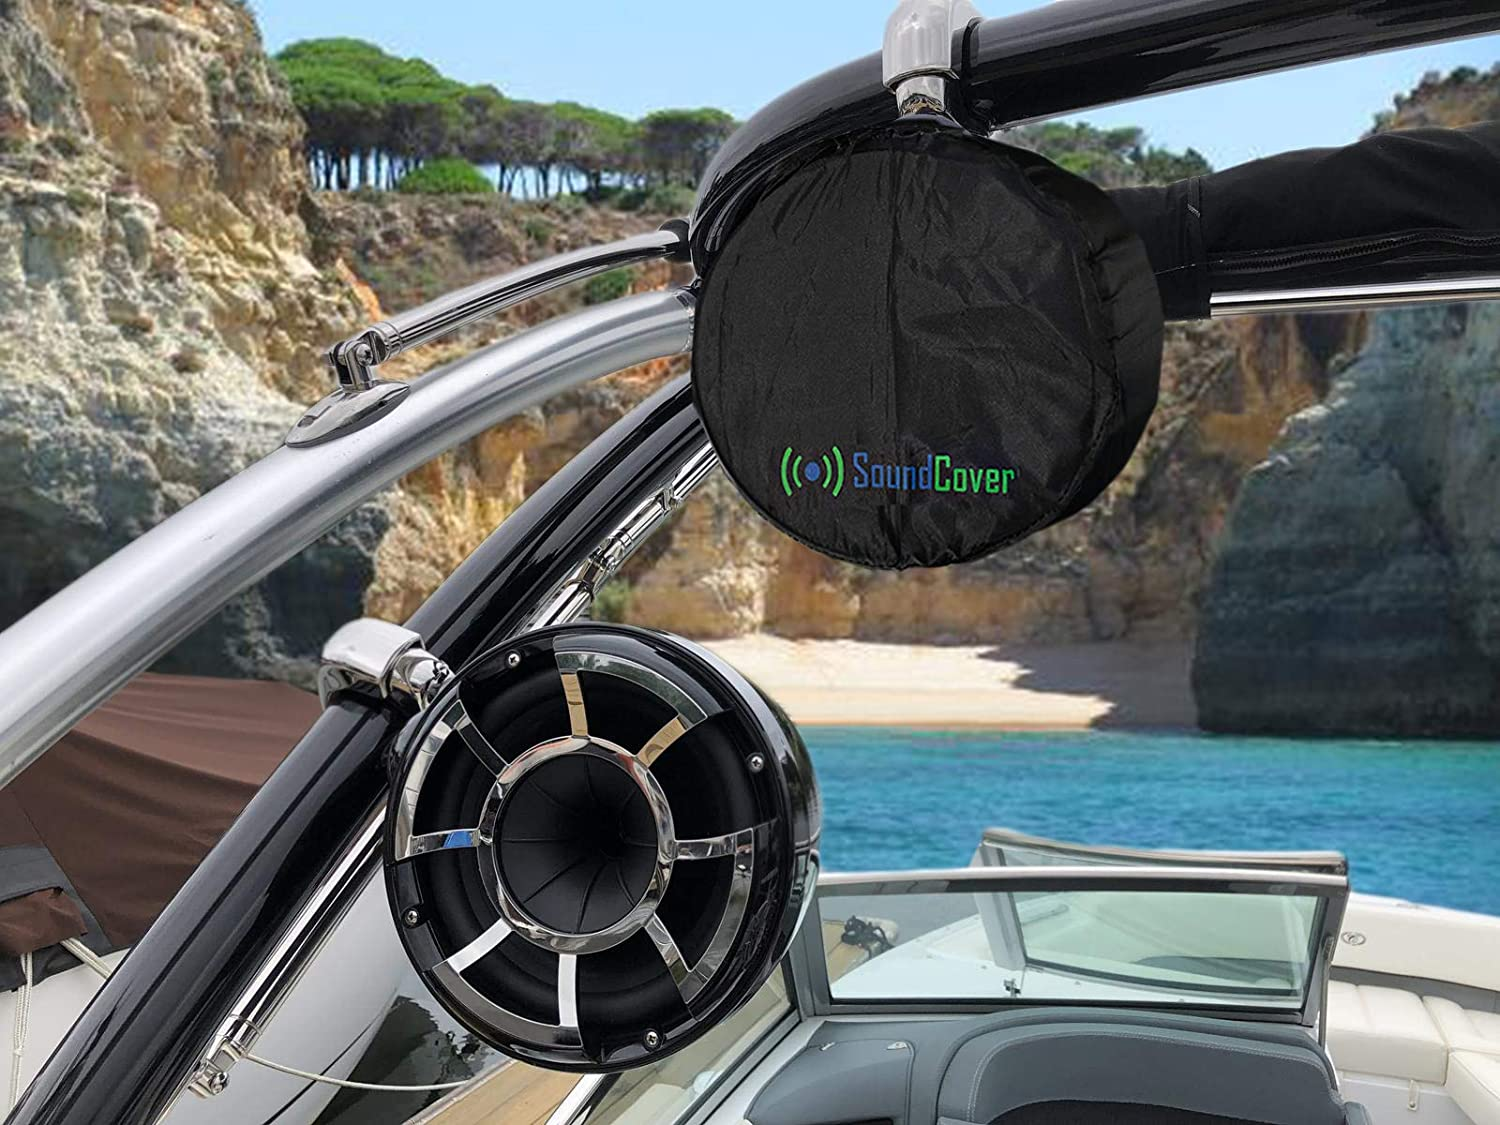 Two Speaker Covers 6.5 inch Round 6x9 Oval Marine Power Boat ATV Wakeboard Tower